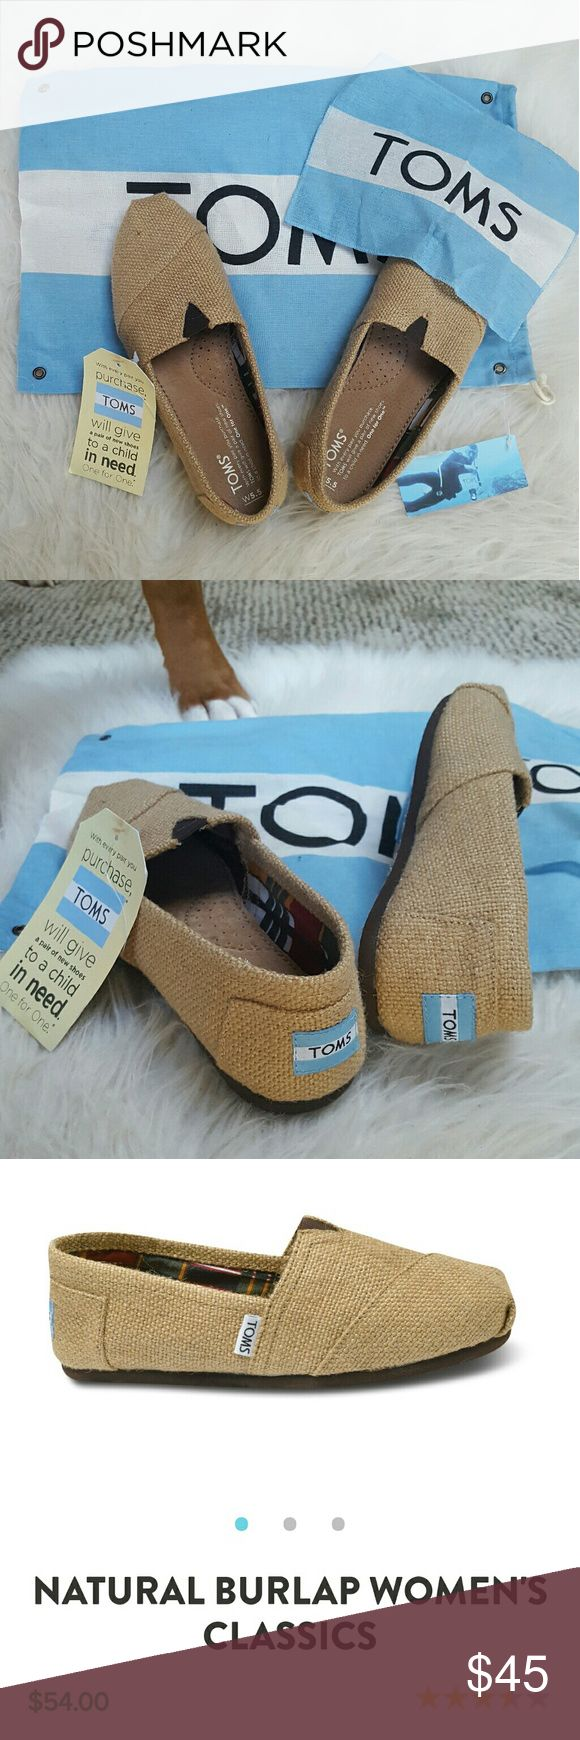 TOMS Natural Burlap Classics Shoes Classic TOMS in natural burlap. Never worn, still with tags. No box, but bag and flag is included.(Sadly, they are too big for me). TOMS Shoes